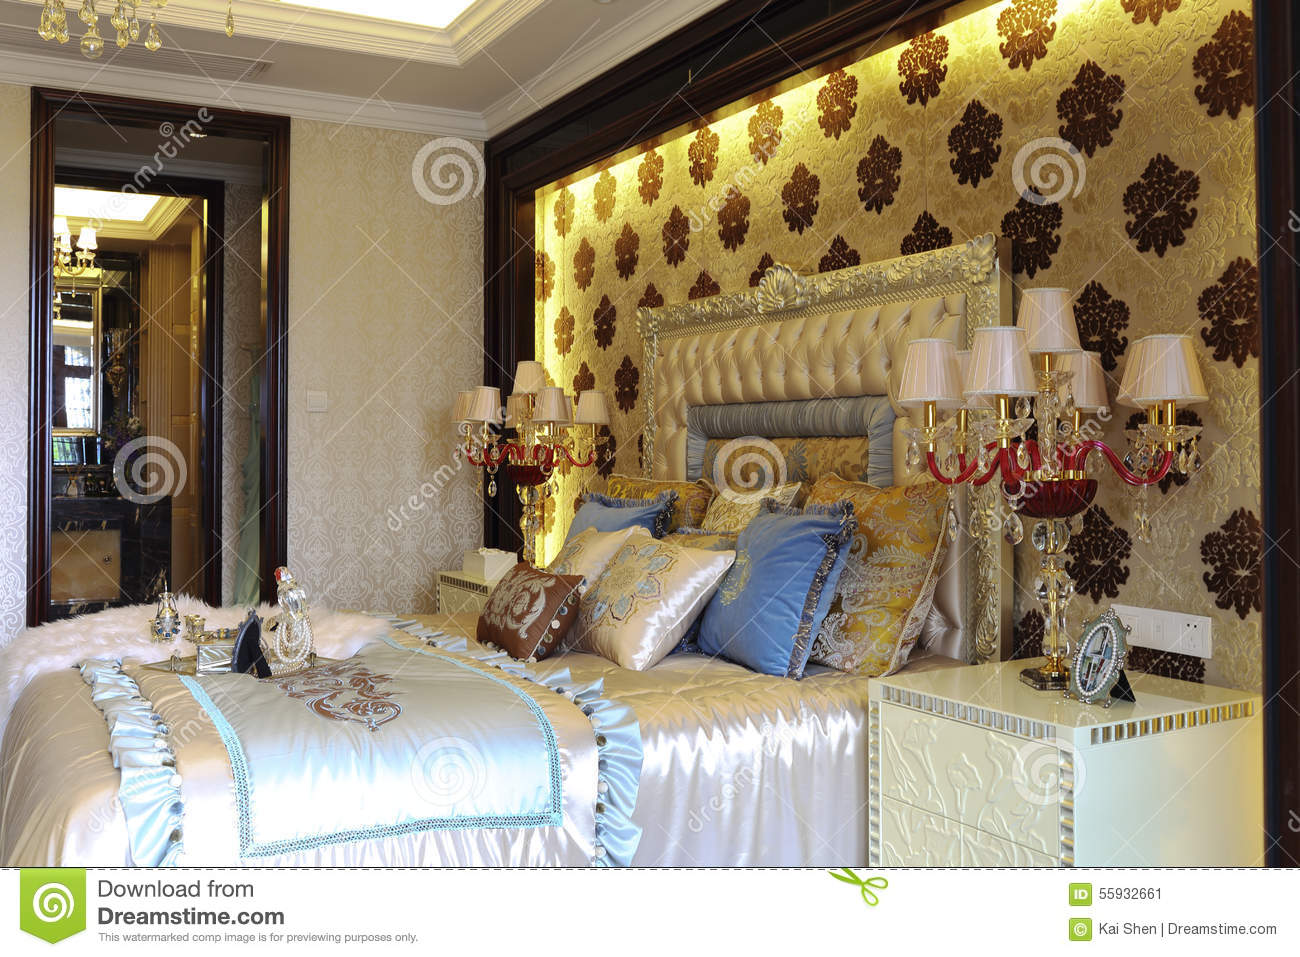 Spots of curtain wall in the bedroom stock photo image 55932661 - Spots of color in the bedroom linens and throws ...